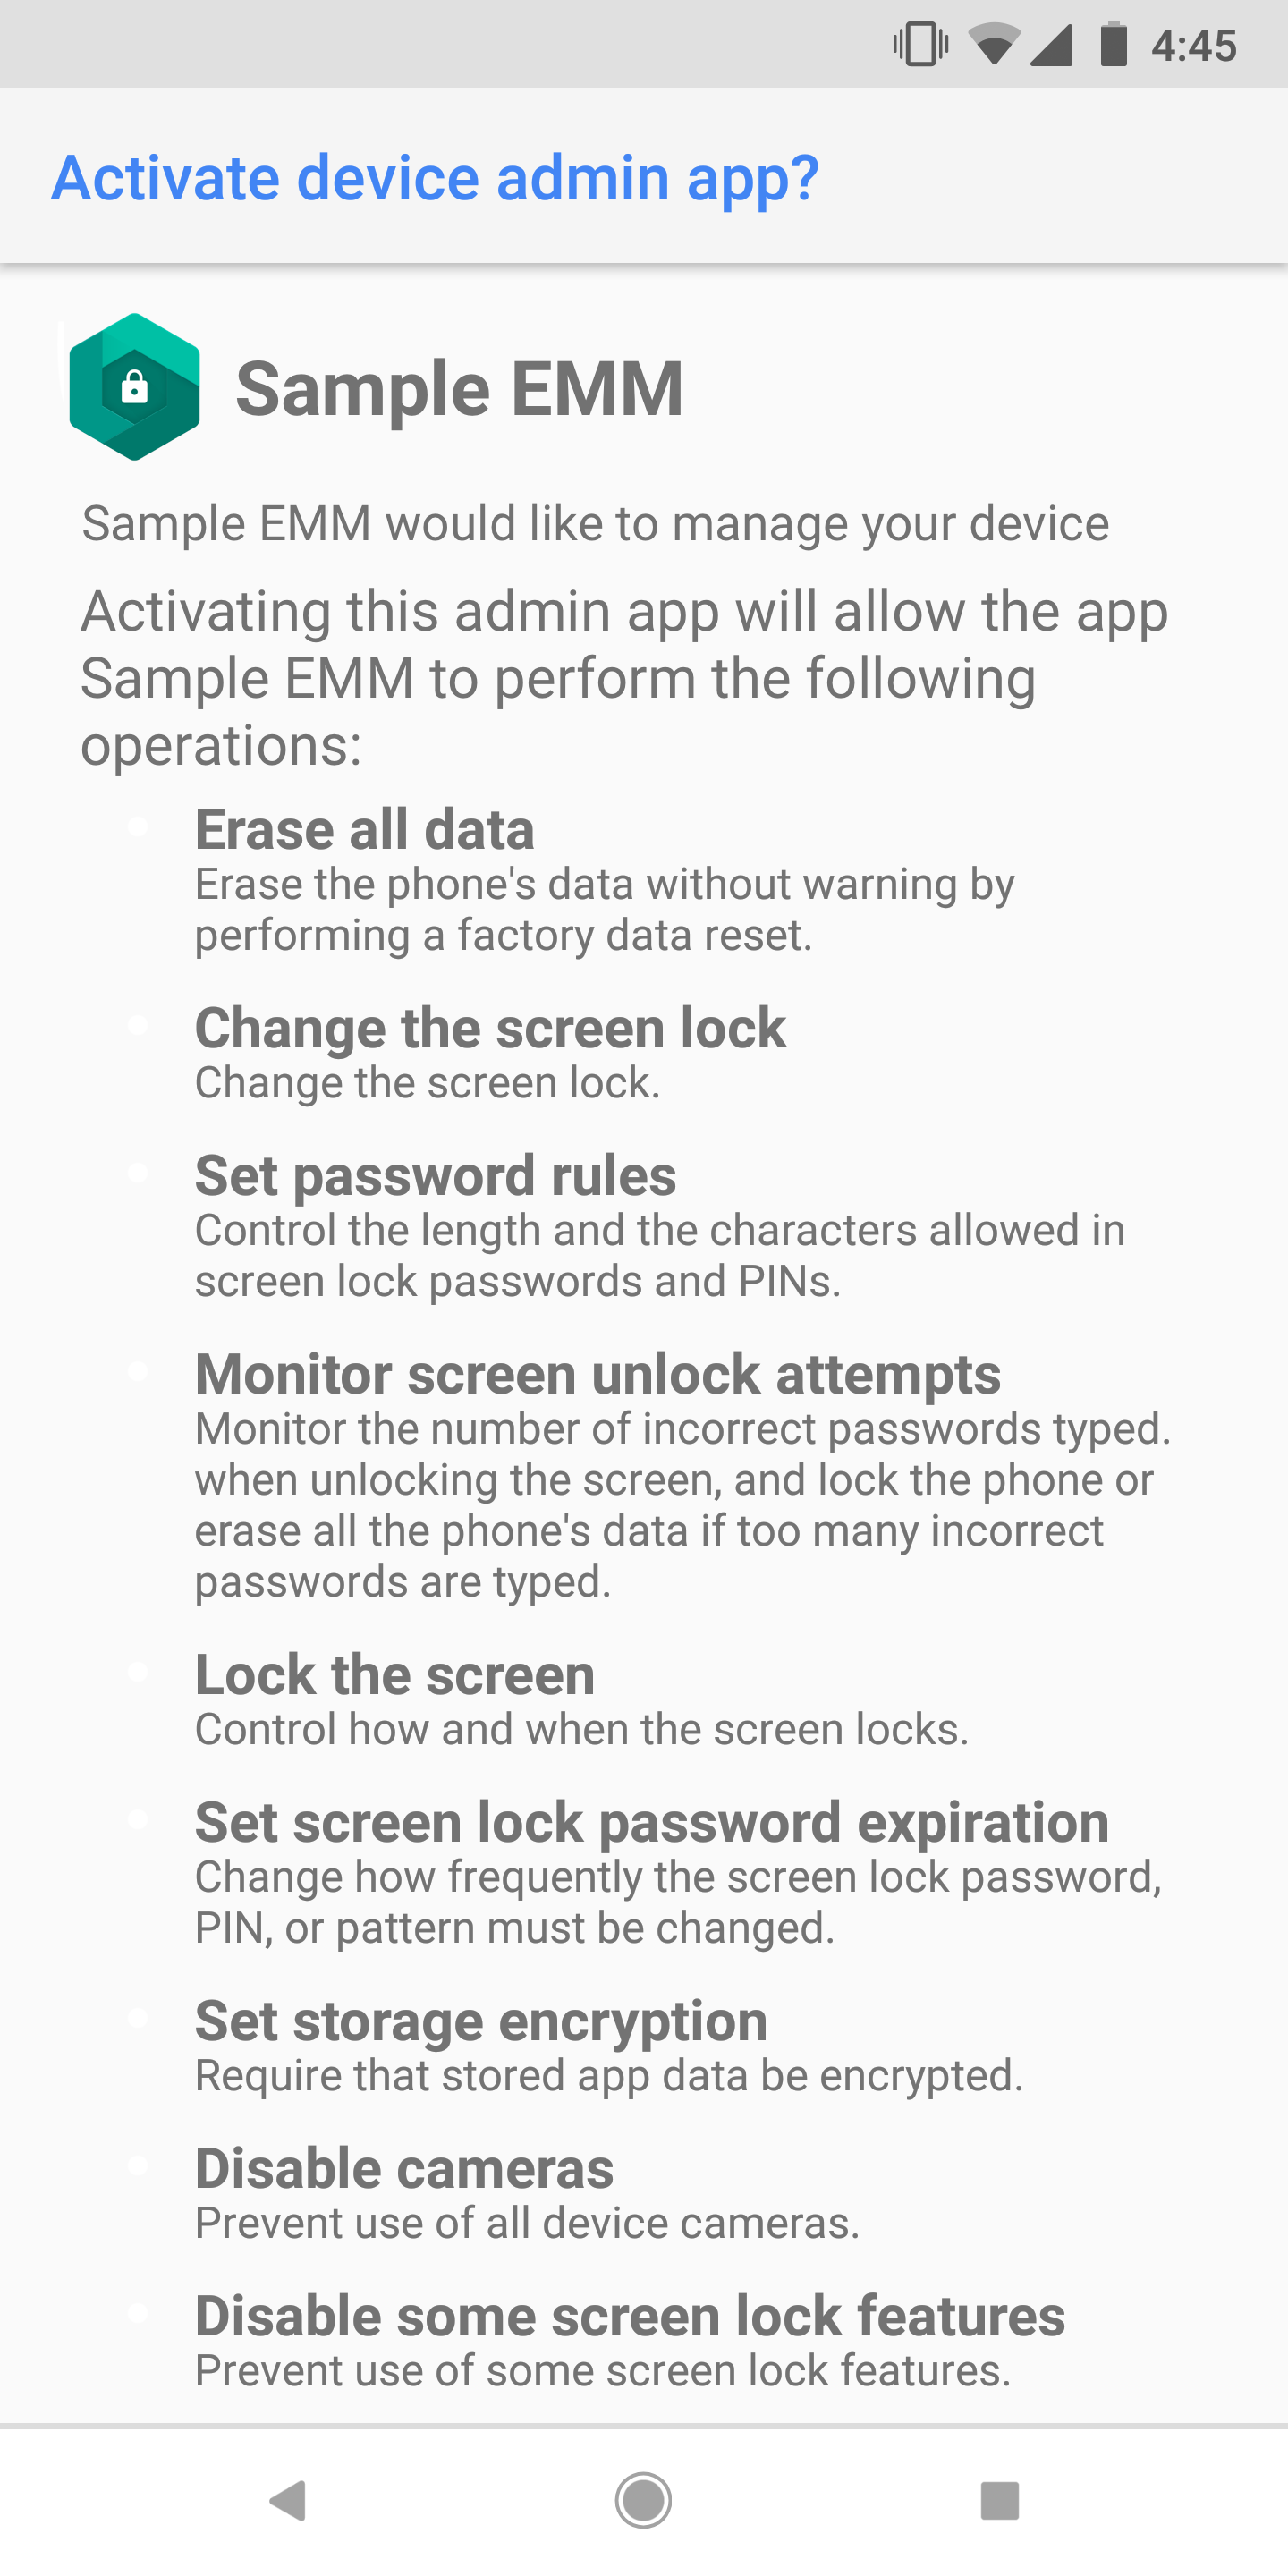 Activate device admin example